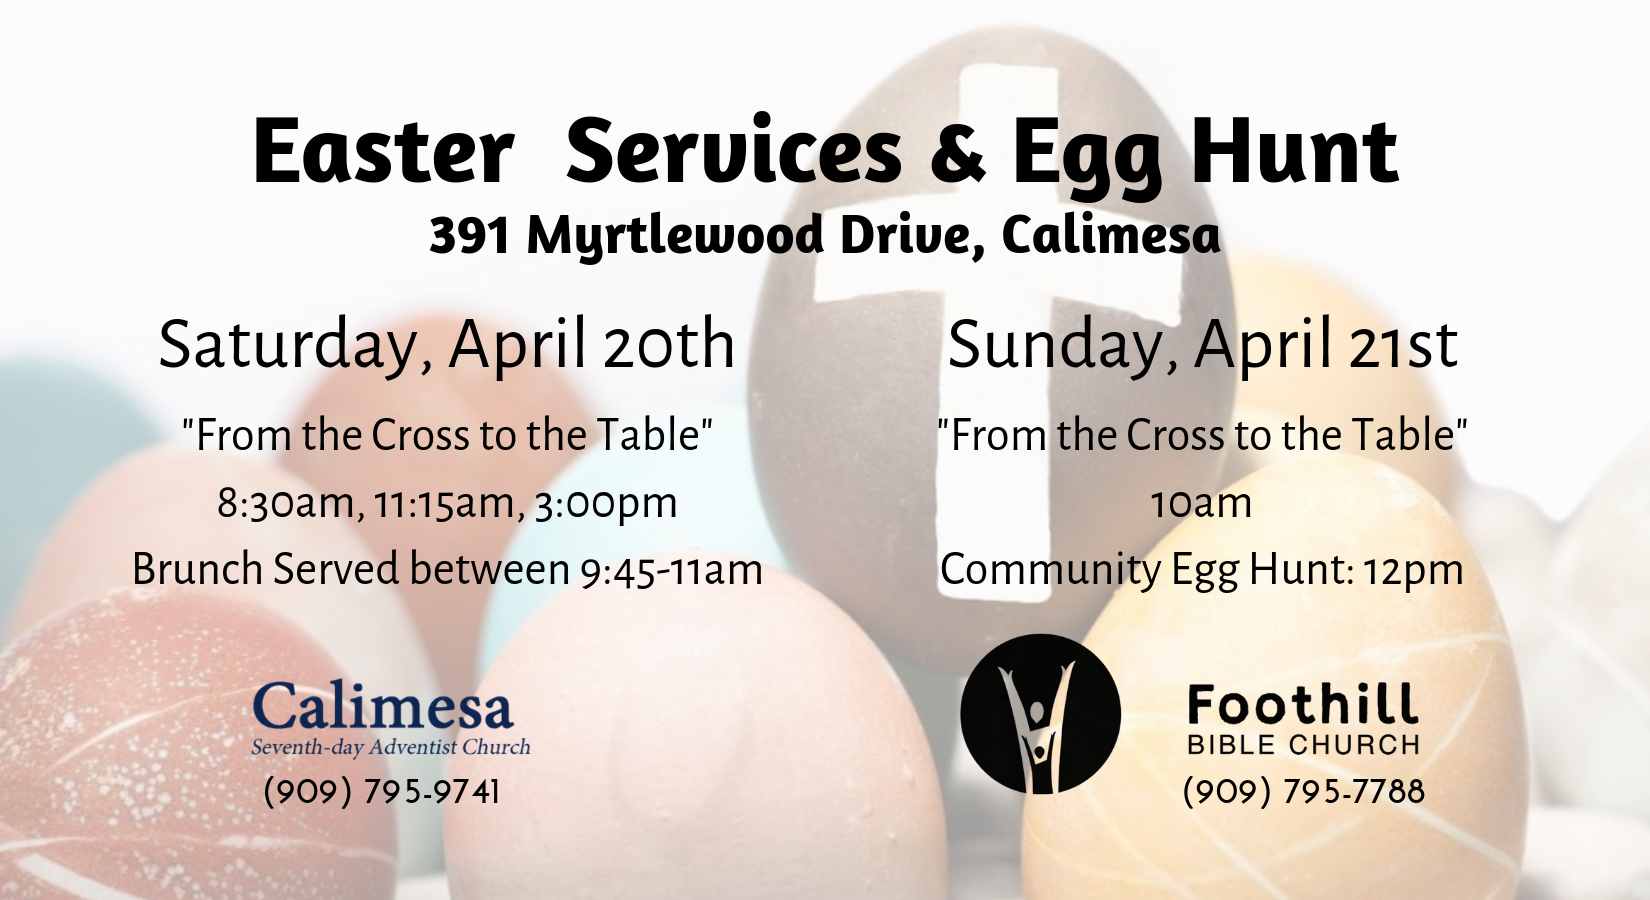 Easter Service and Egg Hunt — Foothill Bible Church